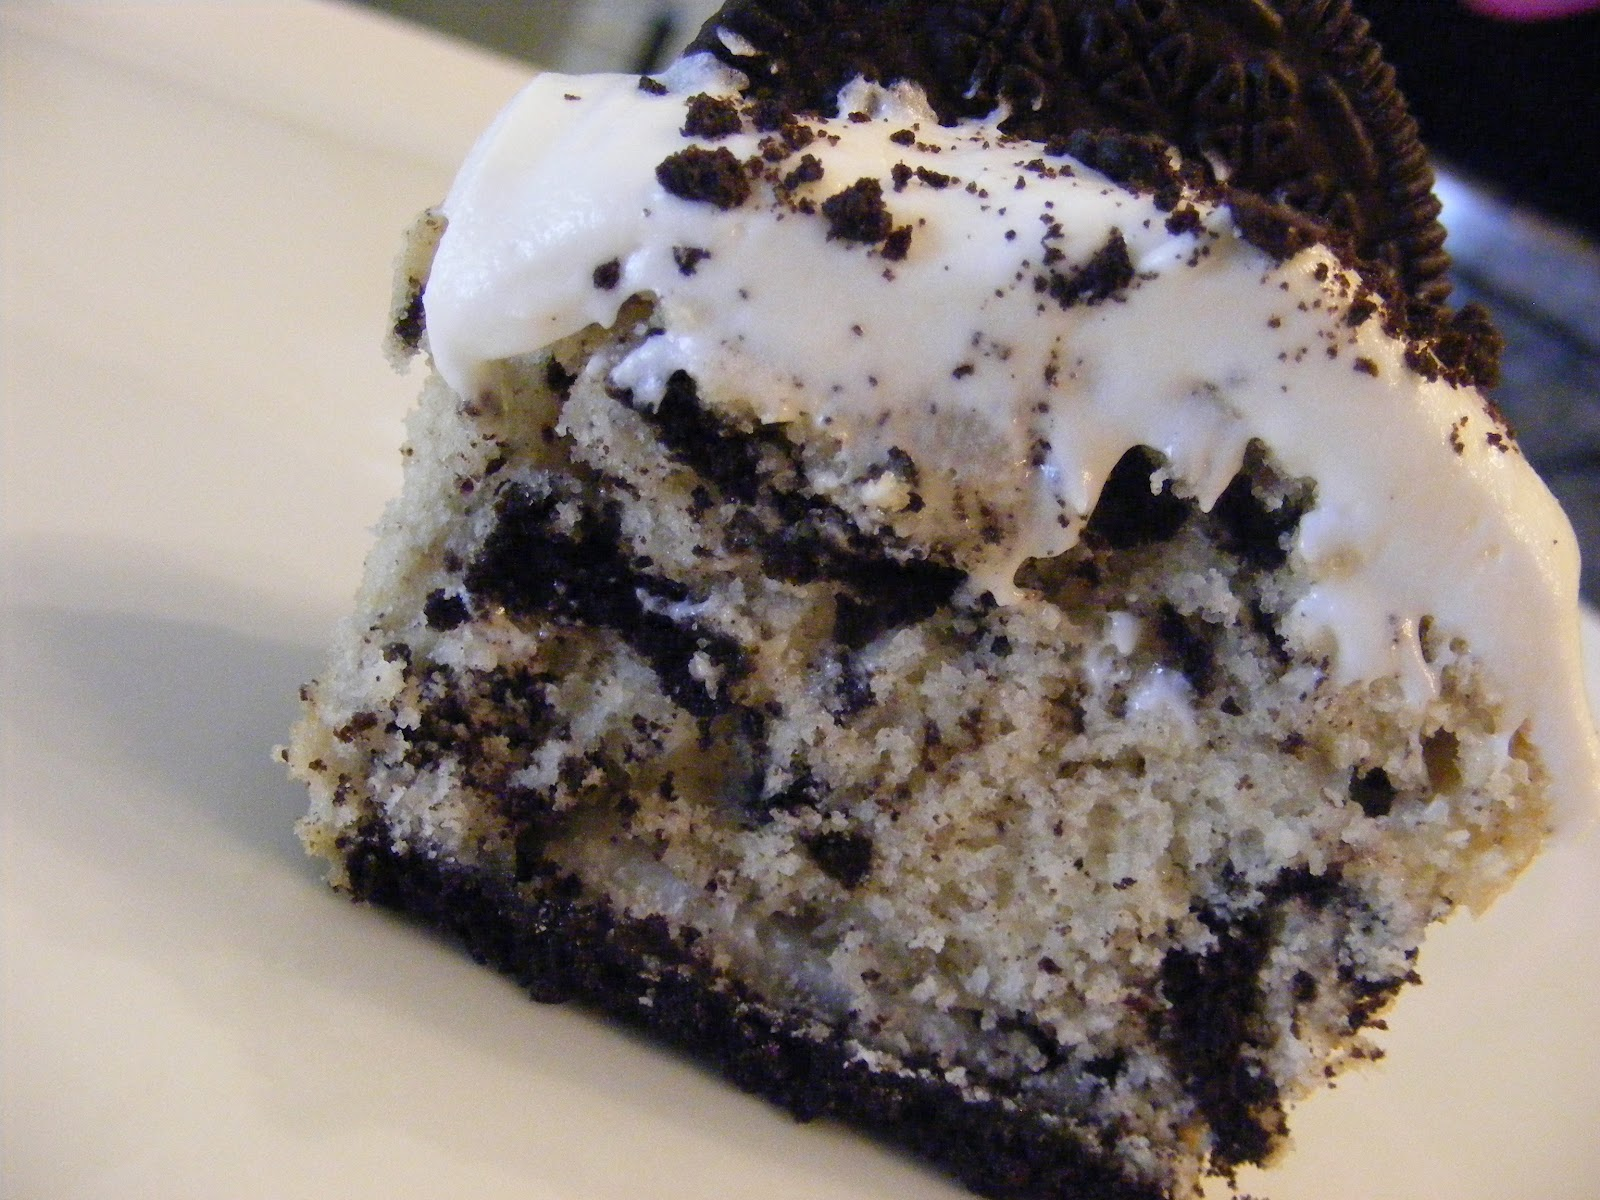 Oreo Cupcakes Recipe Using Cake Mix